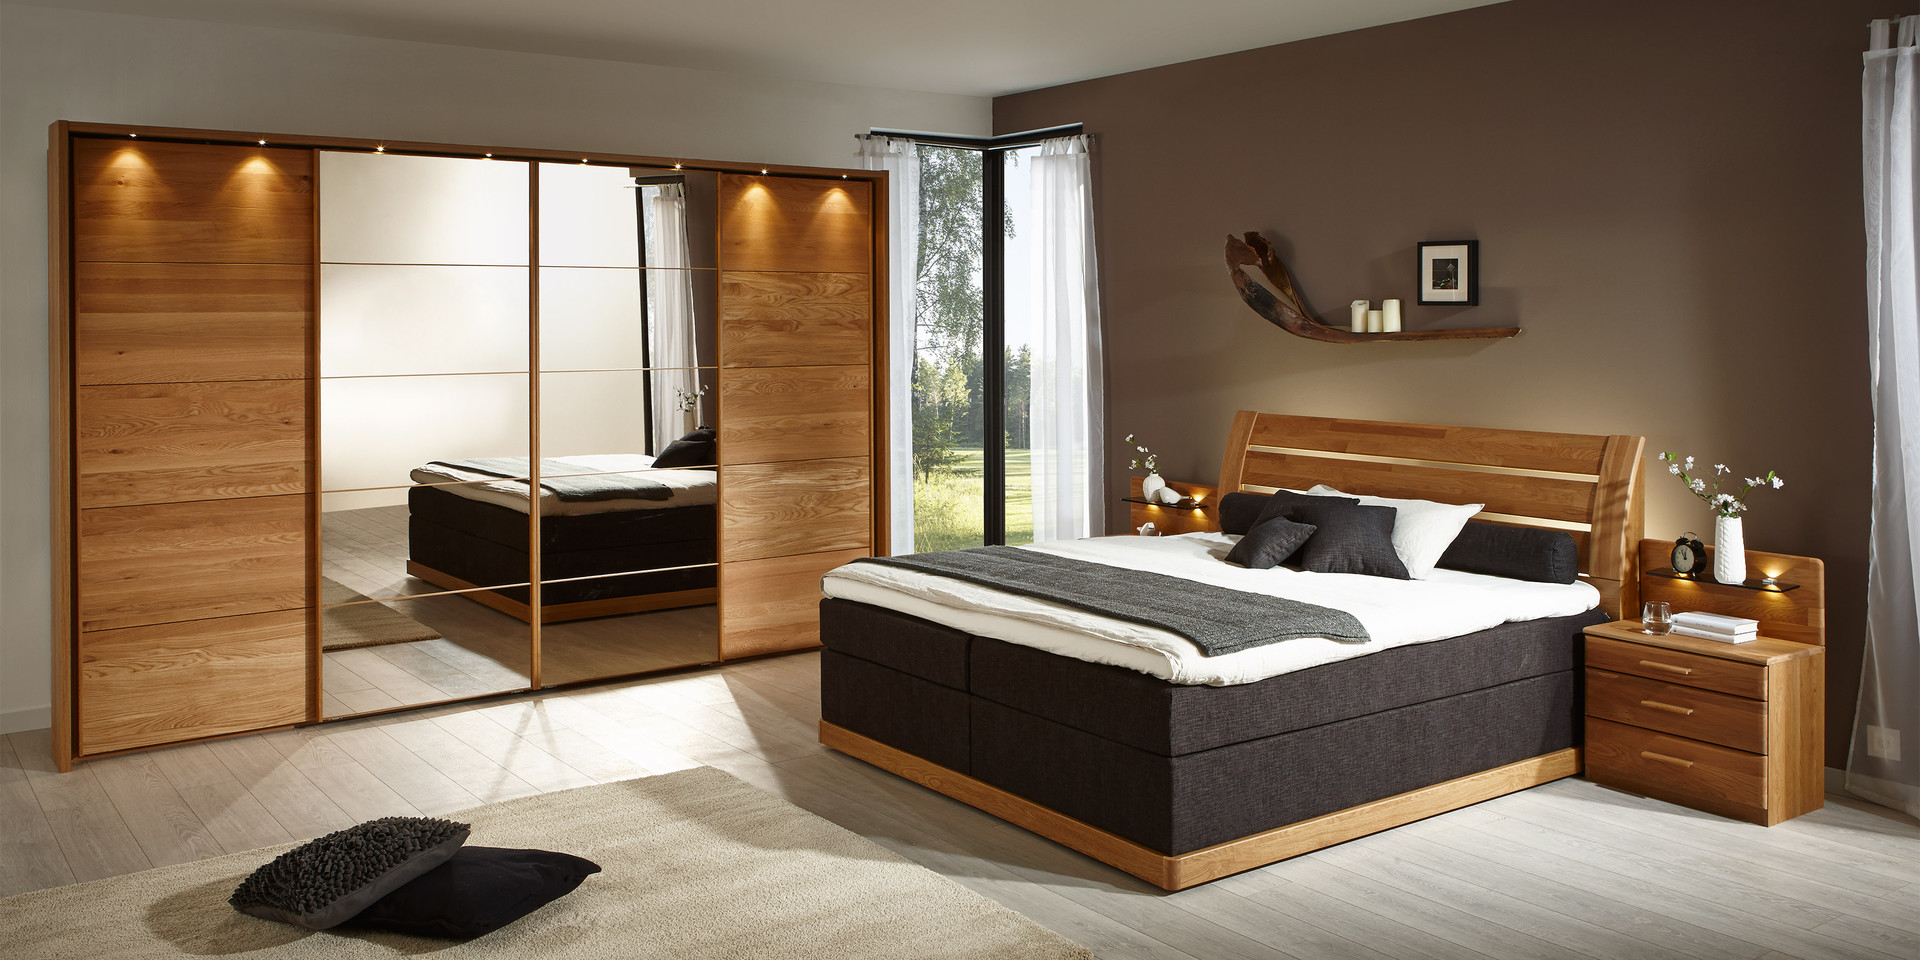 ideen aus altholz. Black Bedroom Furniture Sets. Home Design Ideas